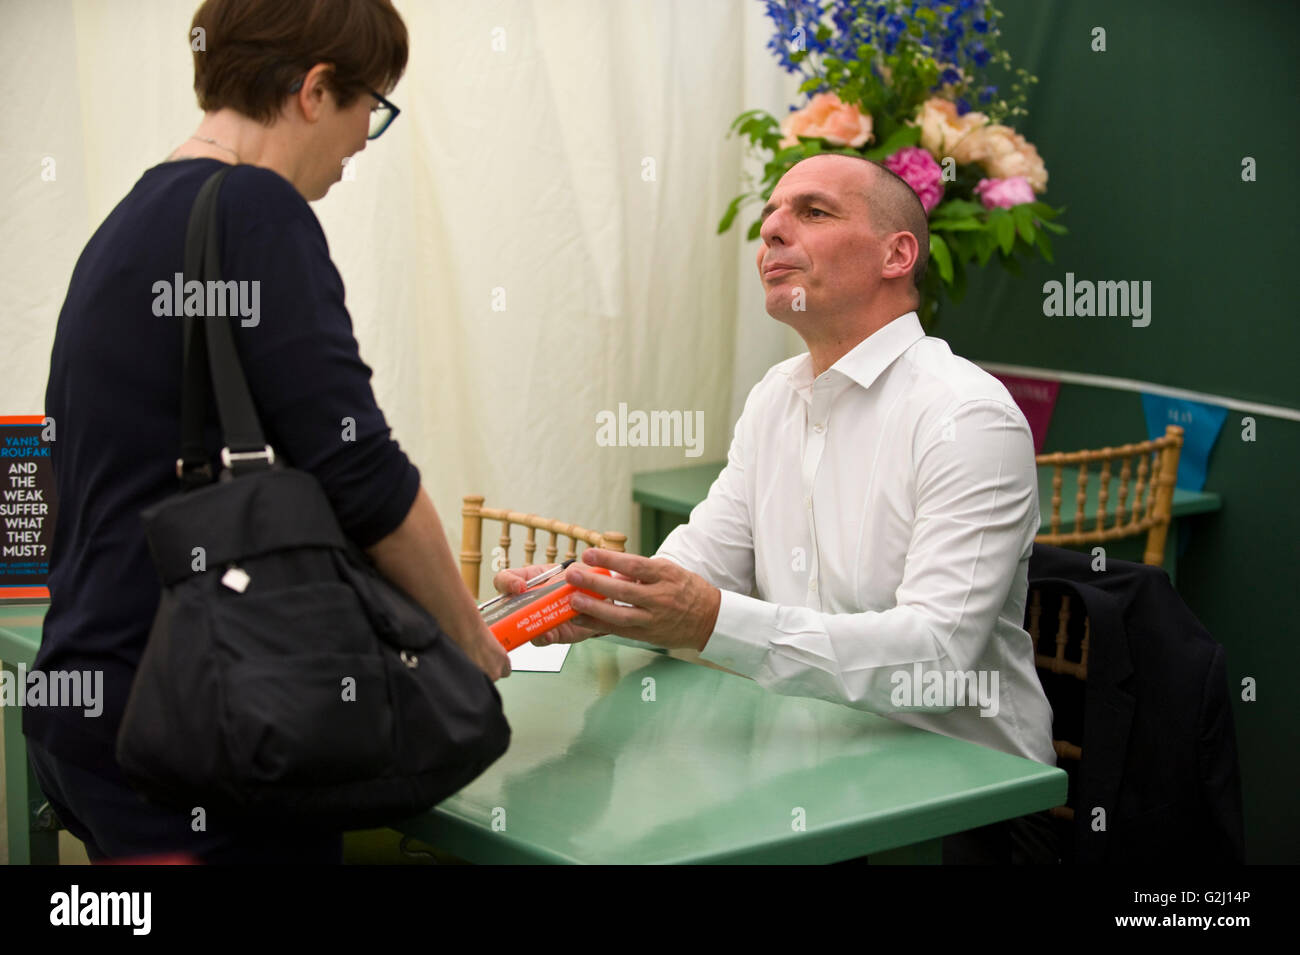 Yanis Varoufakis former finance minister of Greece book signing in the bookshop at Hay Festival 2016 - Stock Image